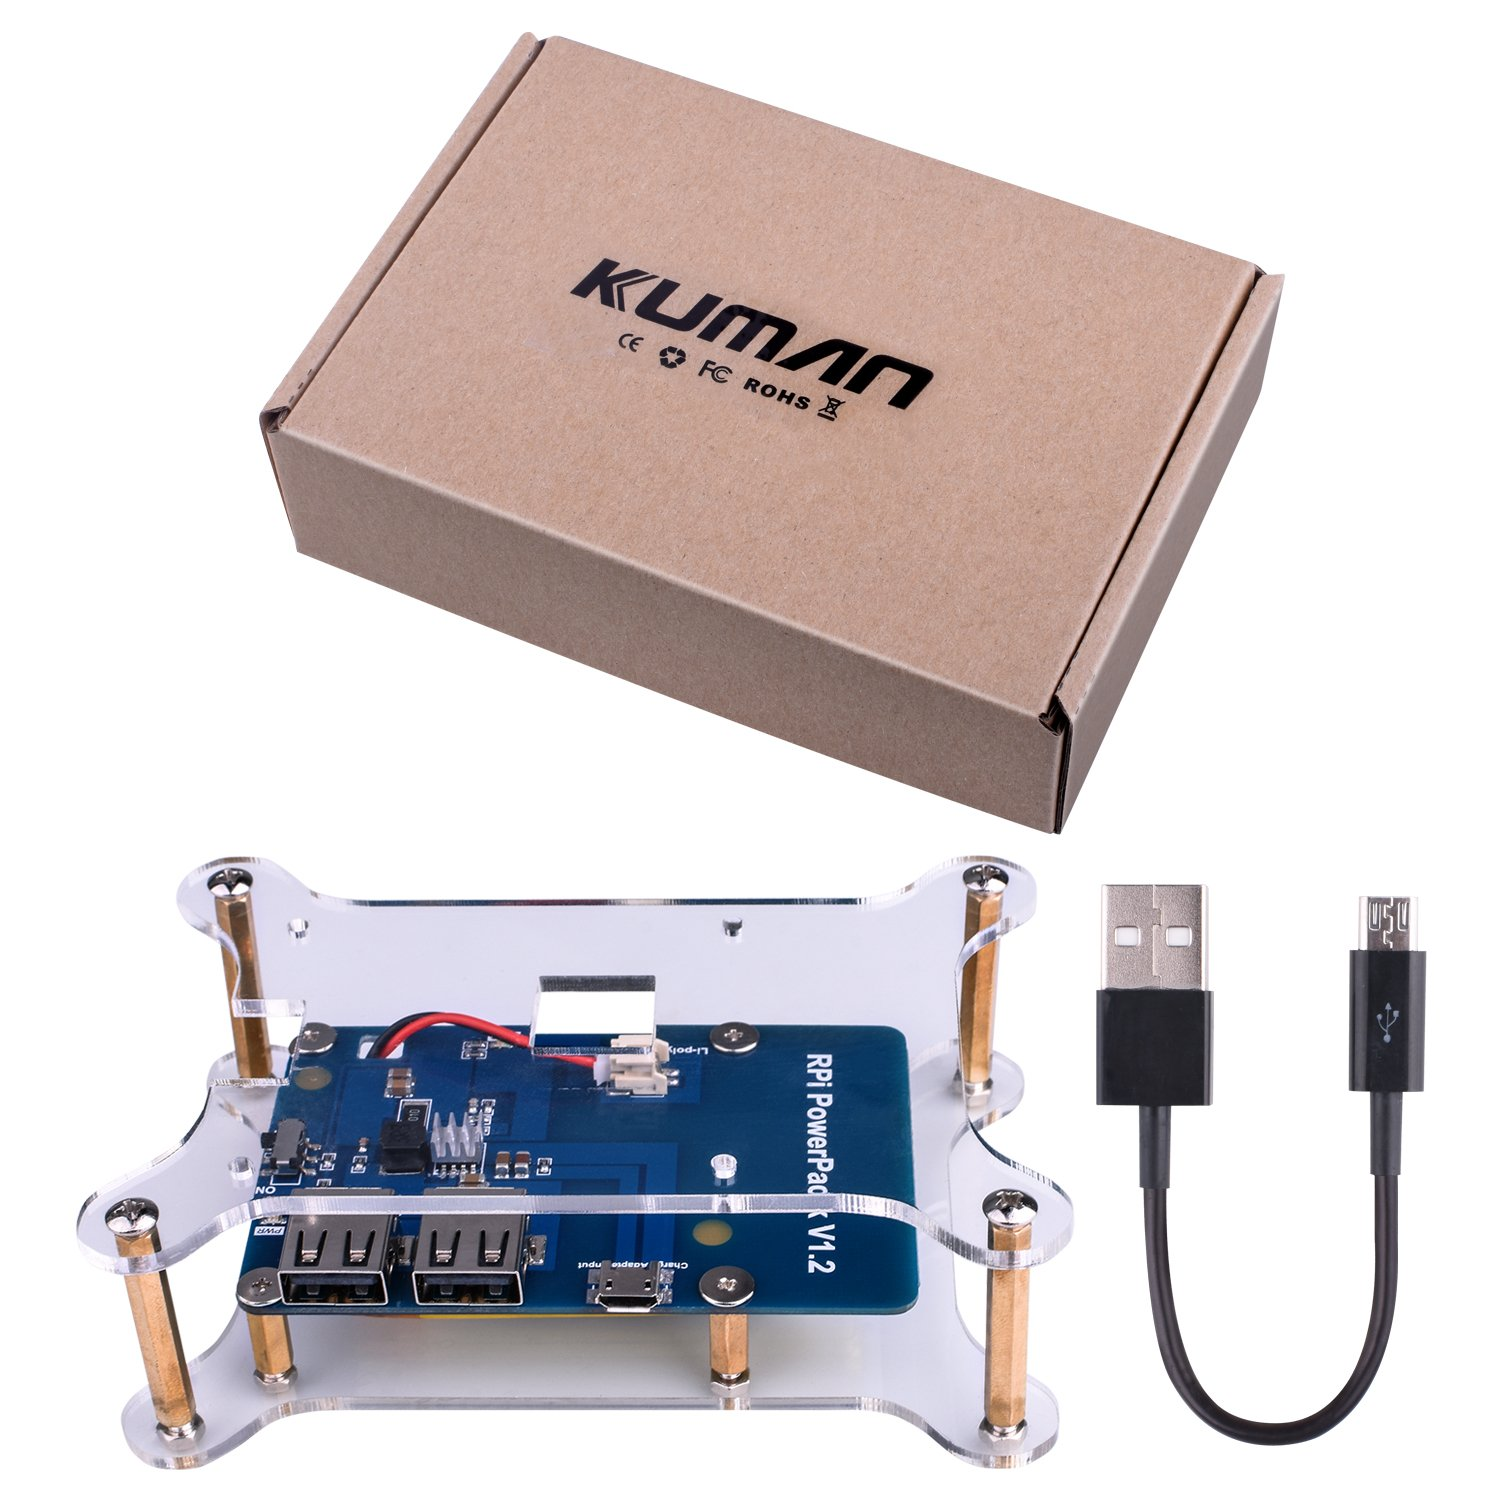 for Raspberry Pi Kuman Lithium Battery Pack Expansion Board RPi Power Pack Power Supply+ USB Cable + 2 layer Acrylic Board for Pi 3 2 Model B KY68C